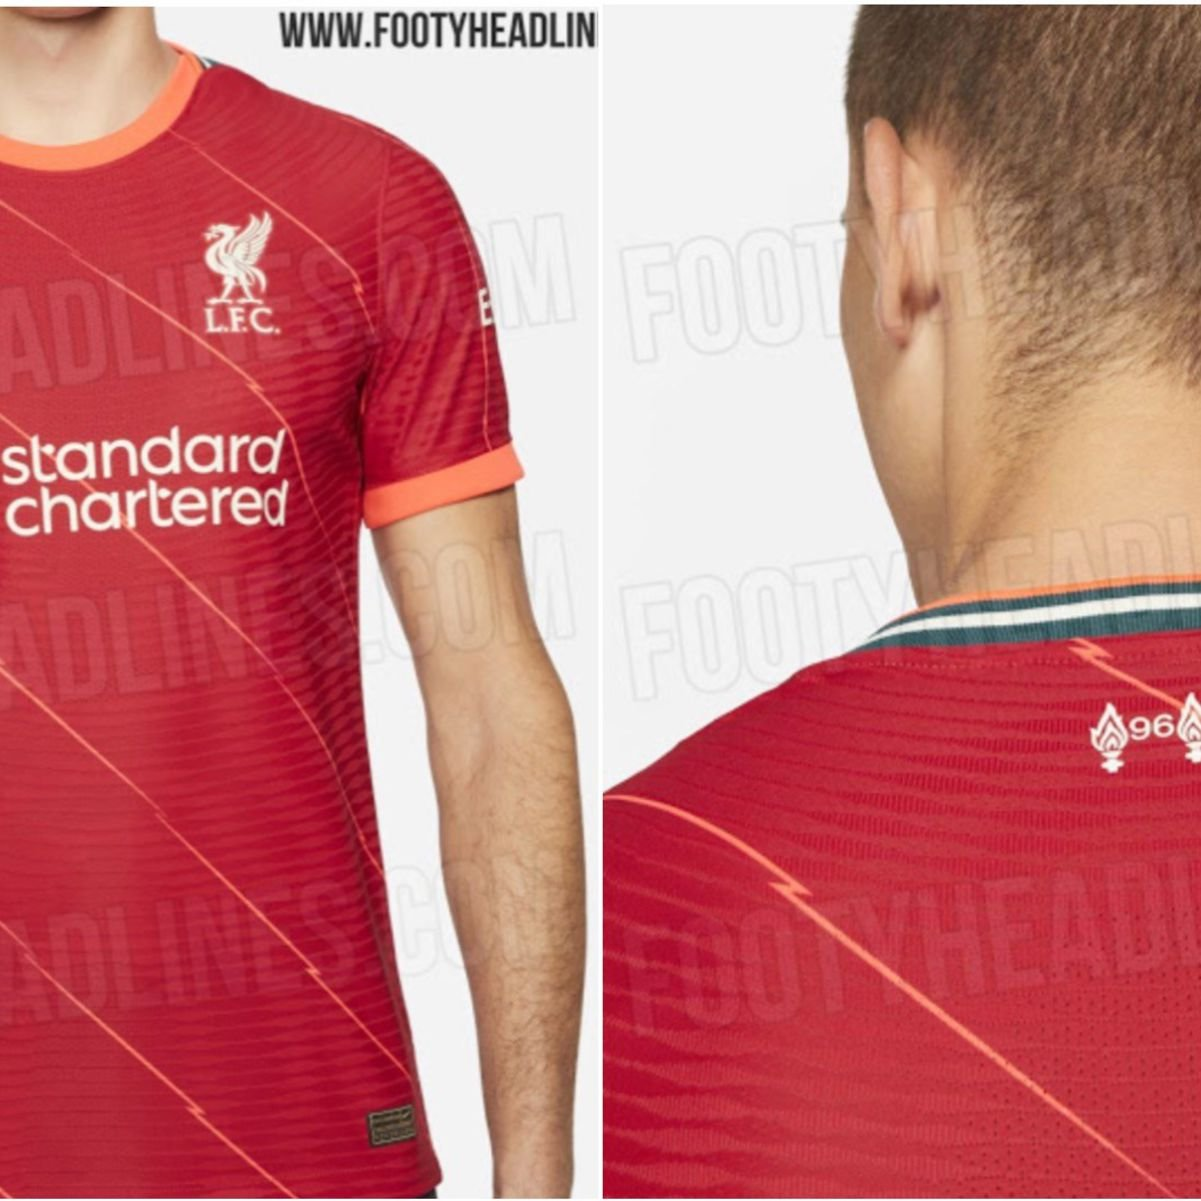 Liverpool new kit: Leaked images show full view of striking new strip |  GiveMeSport